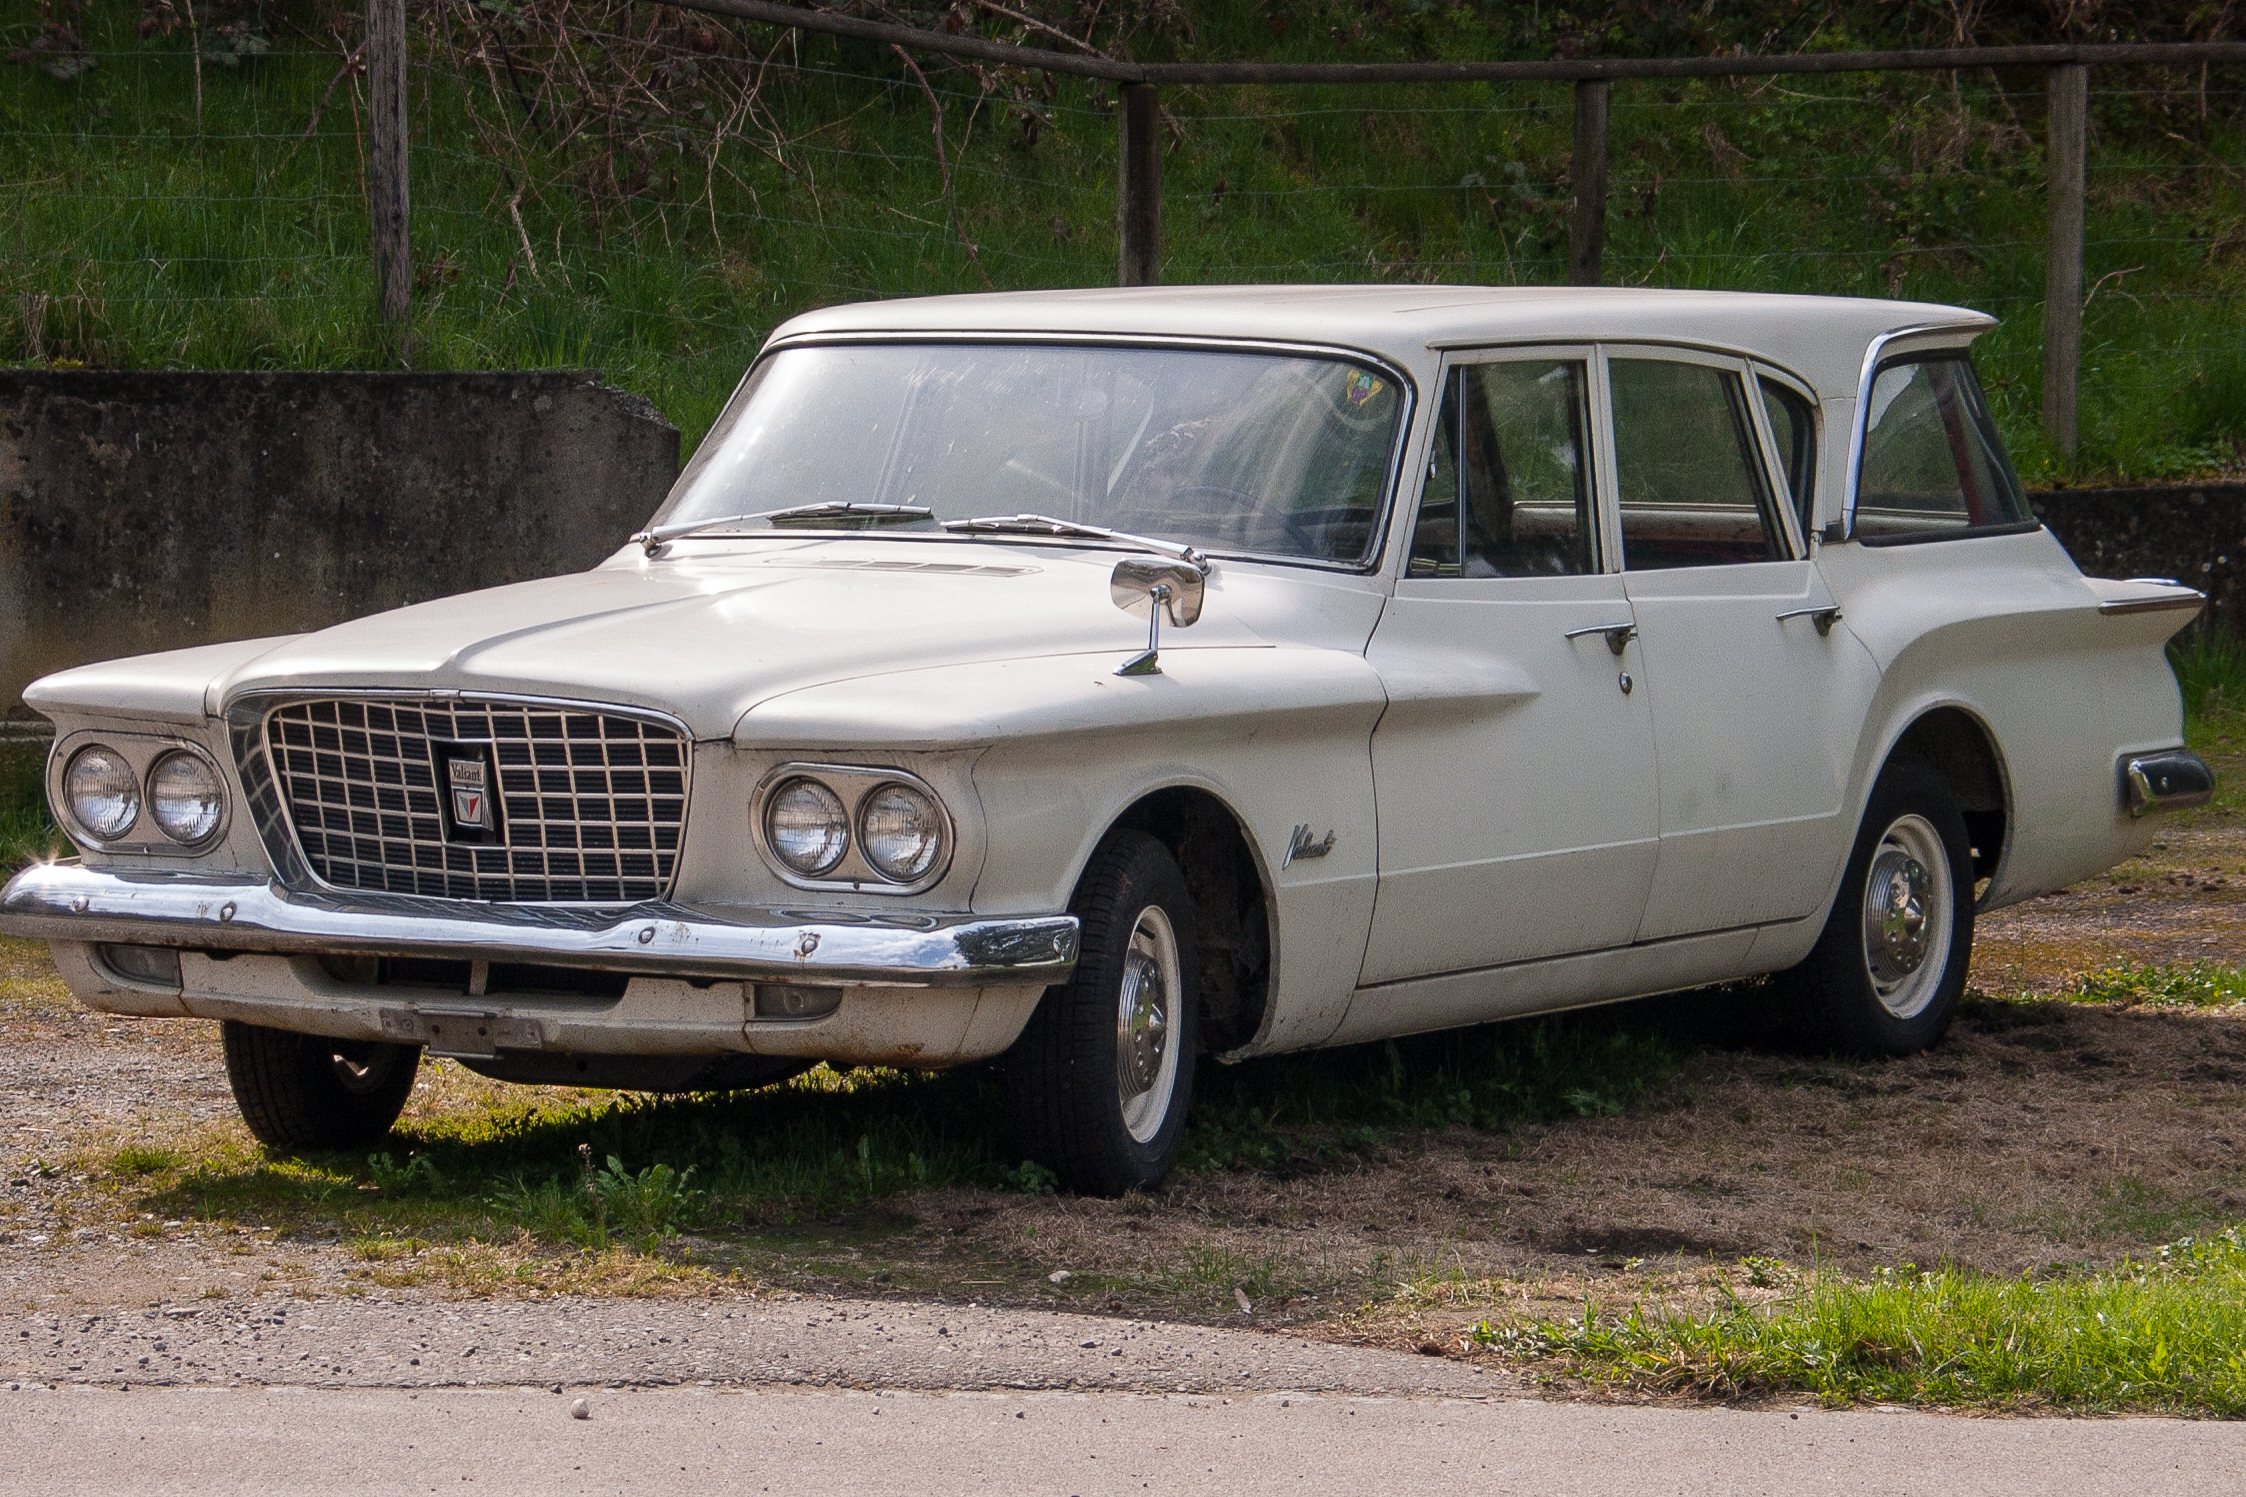 File:Plymouth Valiant Station Wagon (First Generation) jpg